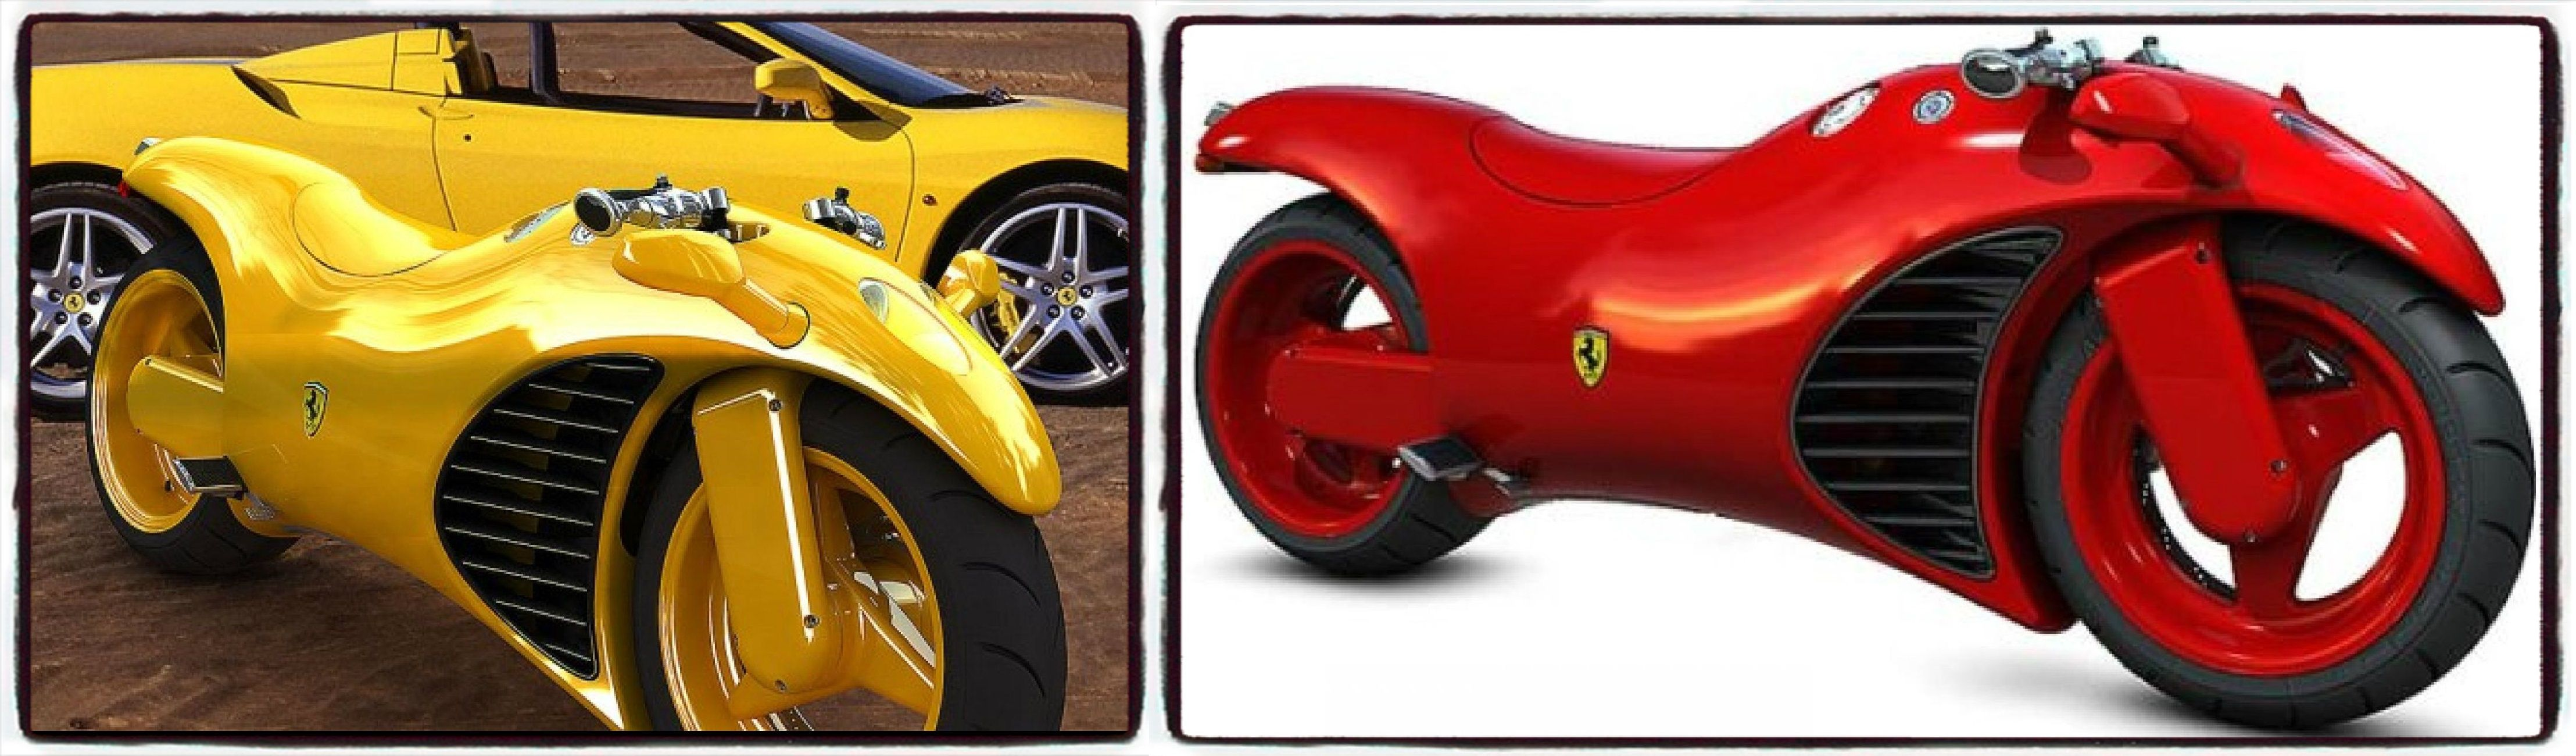 This Concept Ferrari V4 Motorcycle combines elements of a Ferrari 4 ...